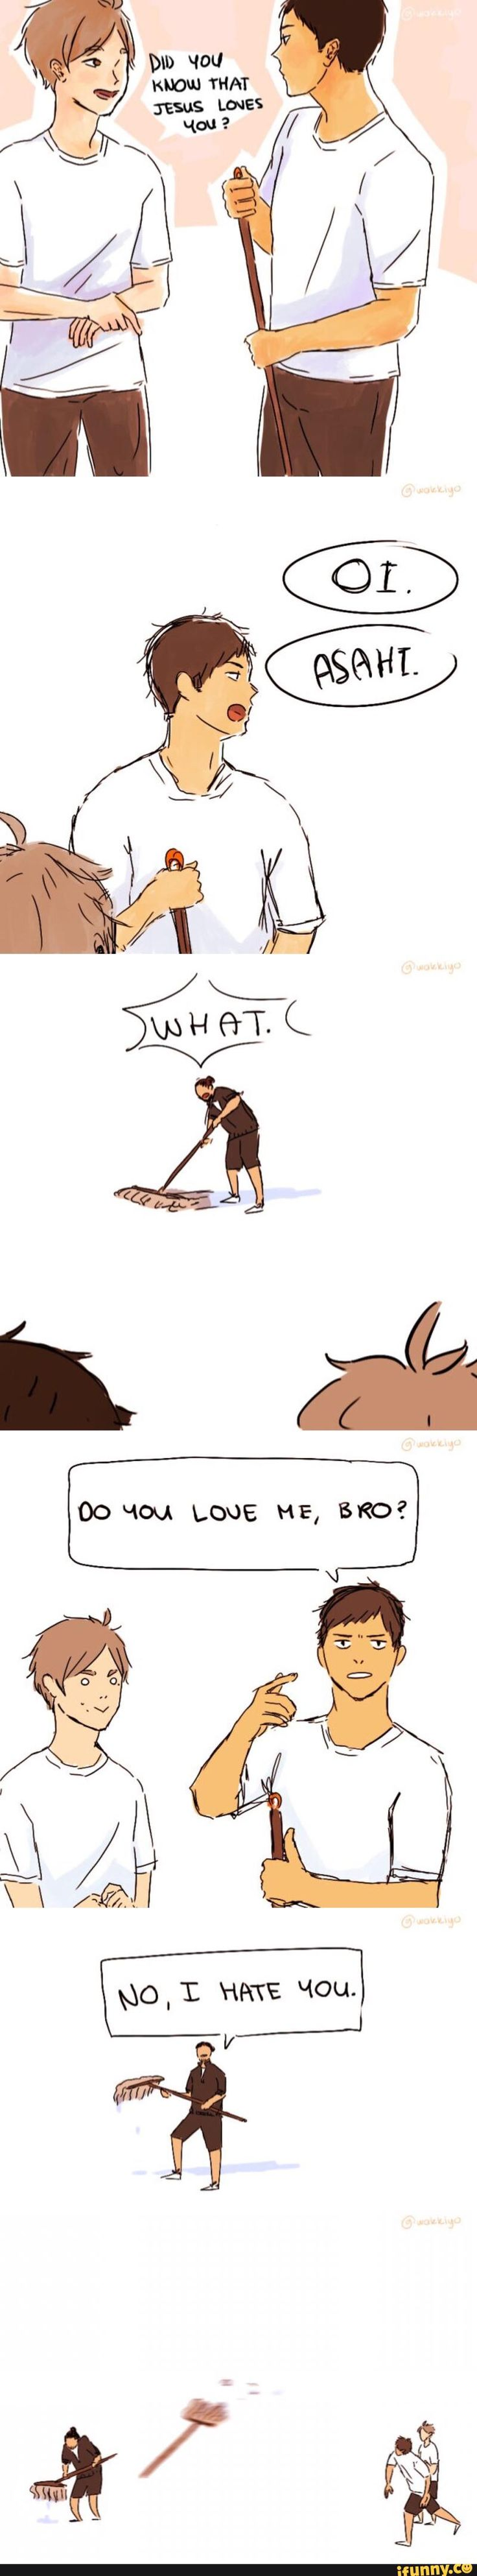 Sorry daichi but...asahi isn't jesus || David Lopez vine lol I love this vine so much